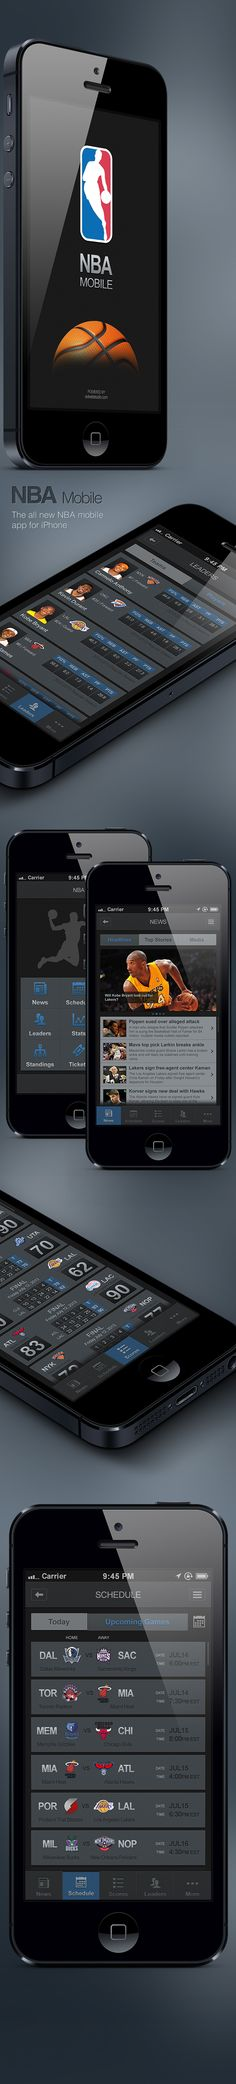 NBA Mobile App for iPhone on Behance